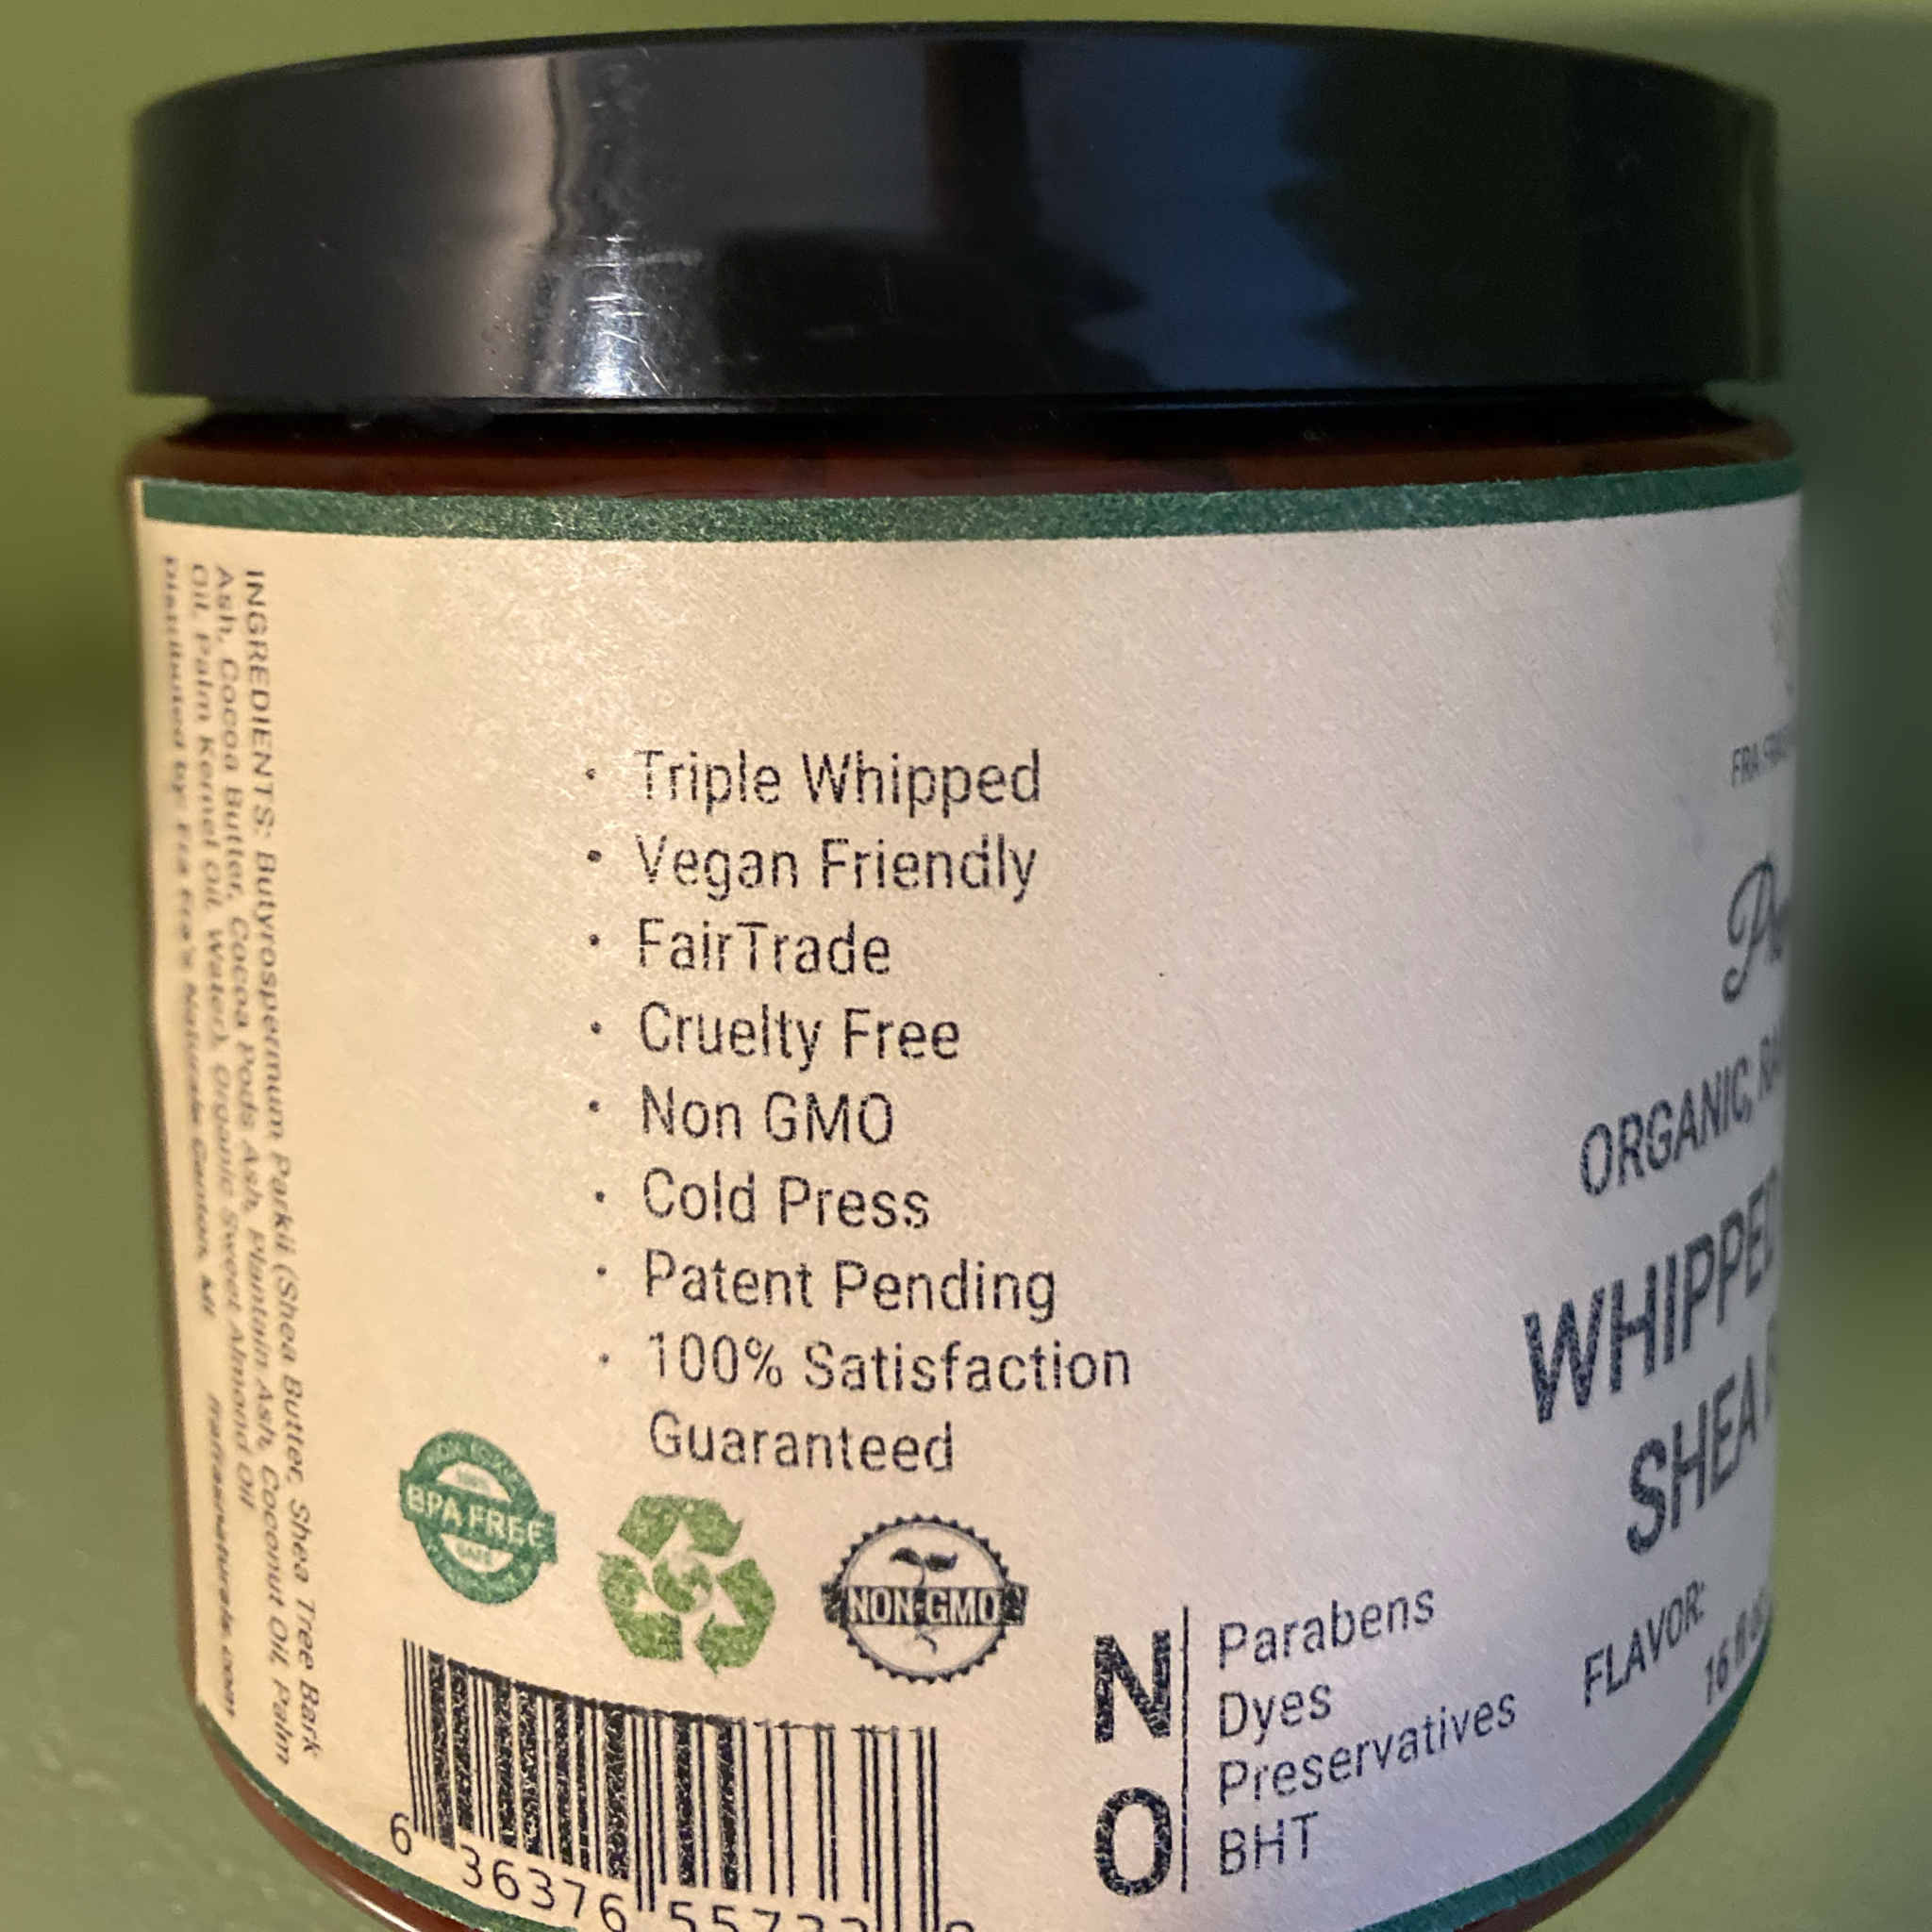 Fra Fra's Naturals | Premium Healing Scar Reducing Whipped Shea Butter Blends